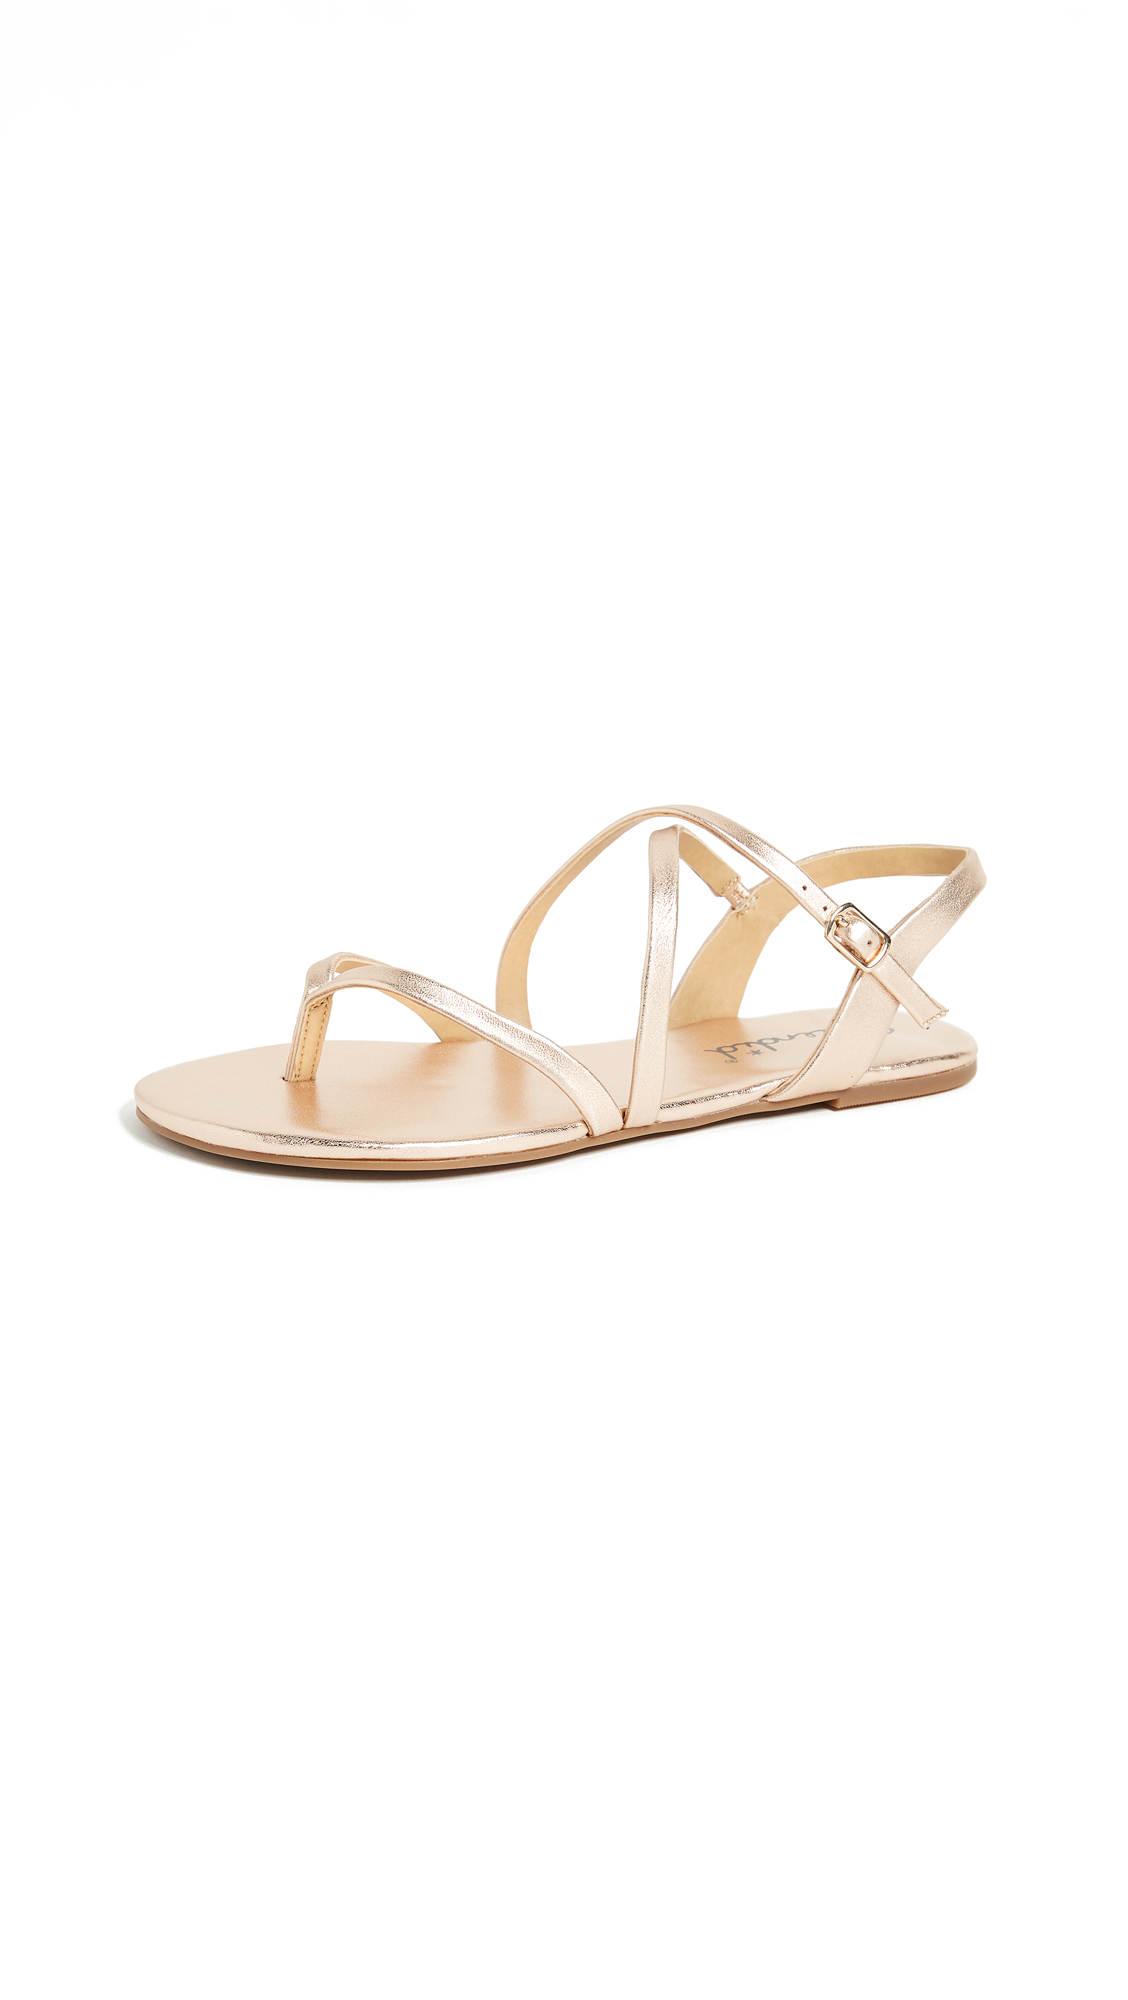 Splendid Brett Strappy Sandals - Rose Gold